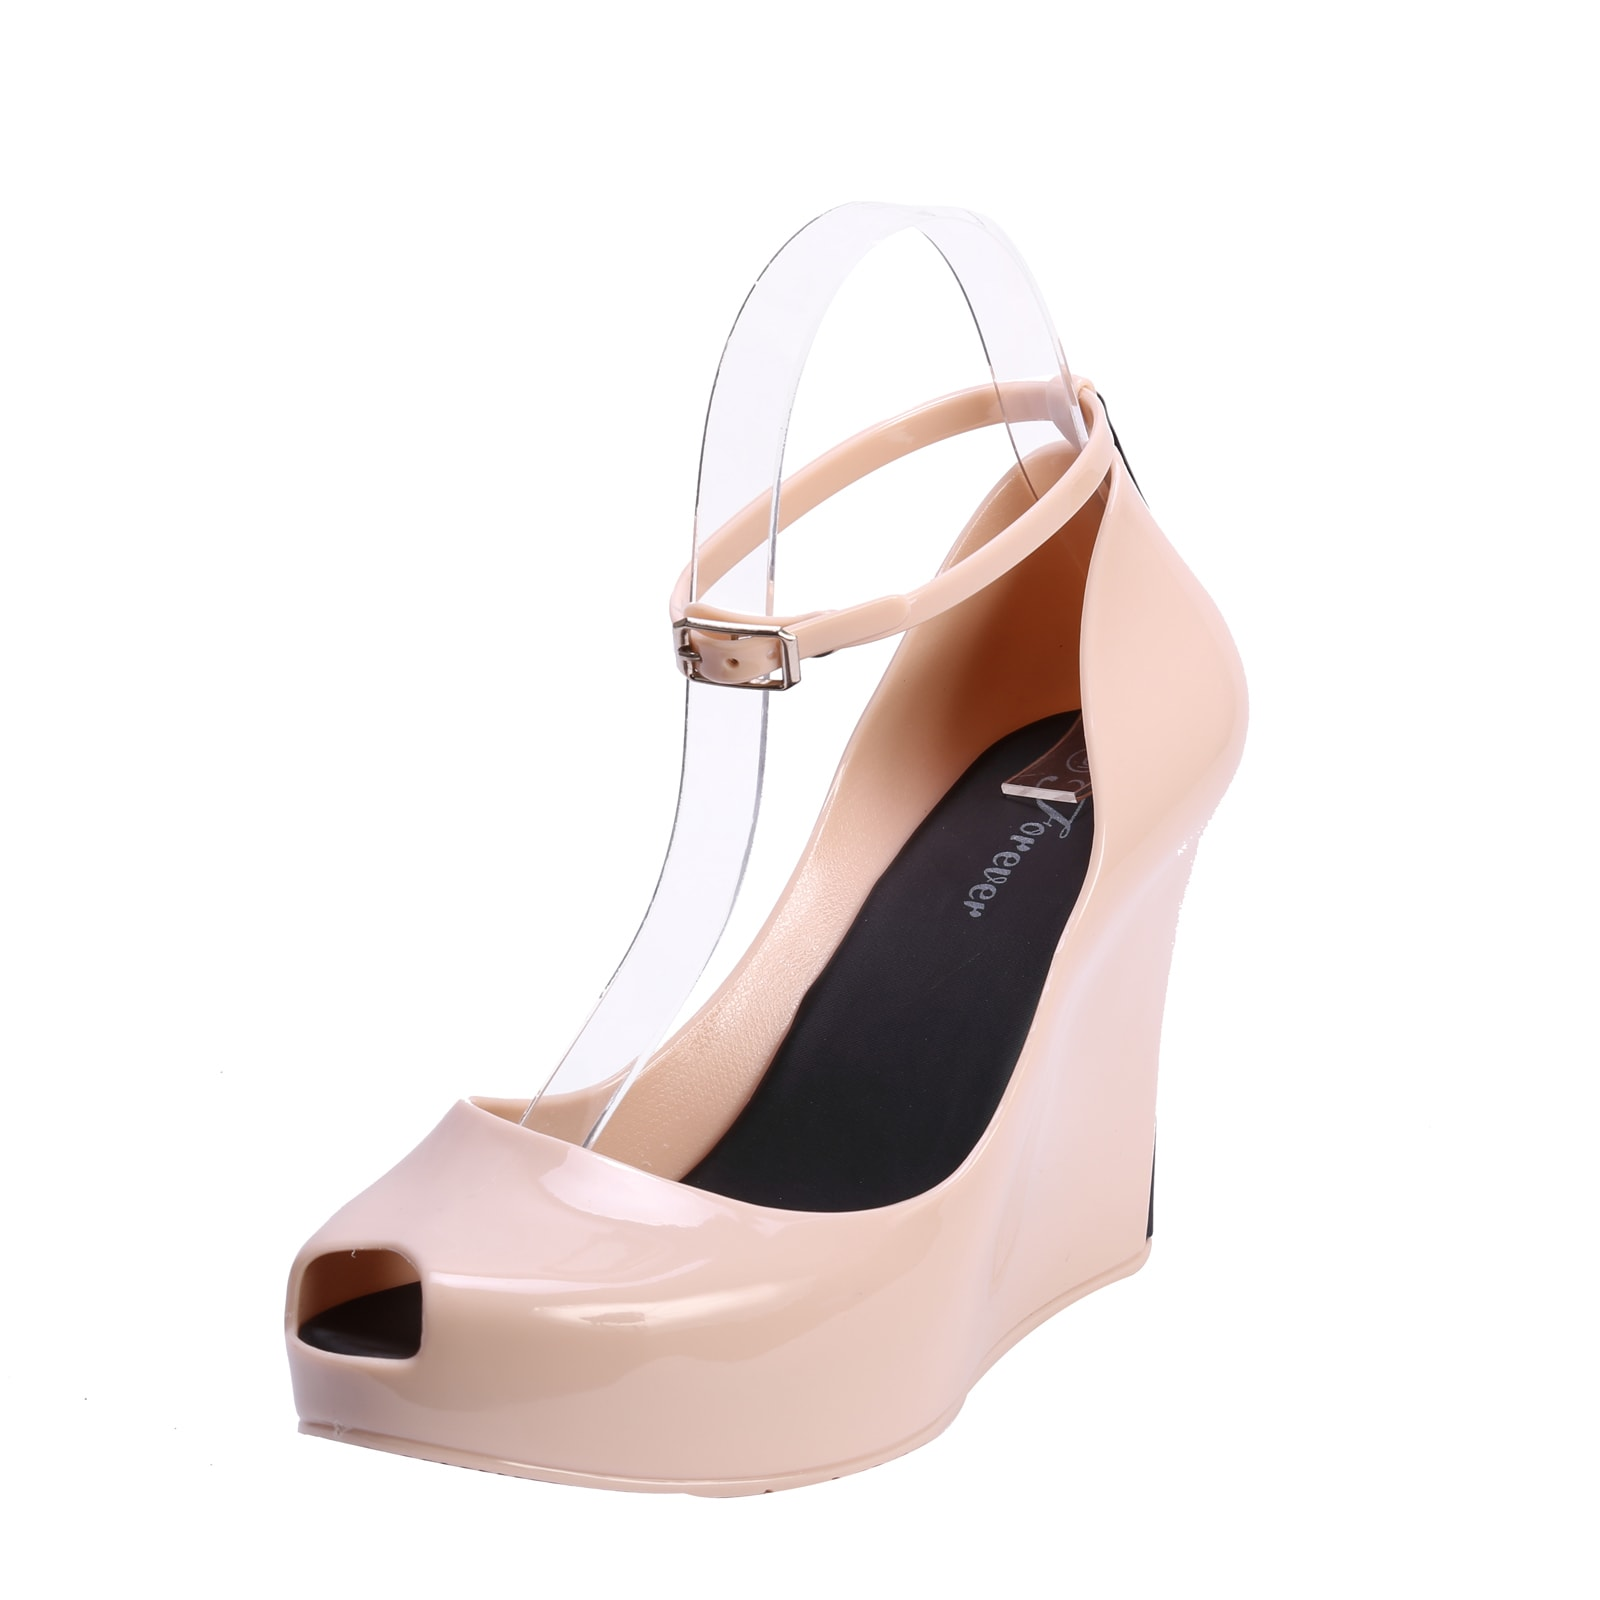 f1272f9bcd9e Shop Coshare Forever Women s Rosemary-86 Jelly PU Basic Low Top Wedge Pumps  - Free Shipping On Orders Over  45 - Overstock - 10149492